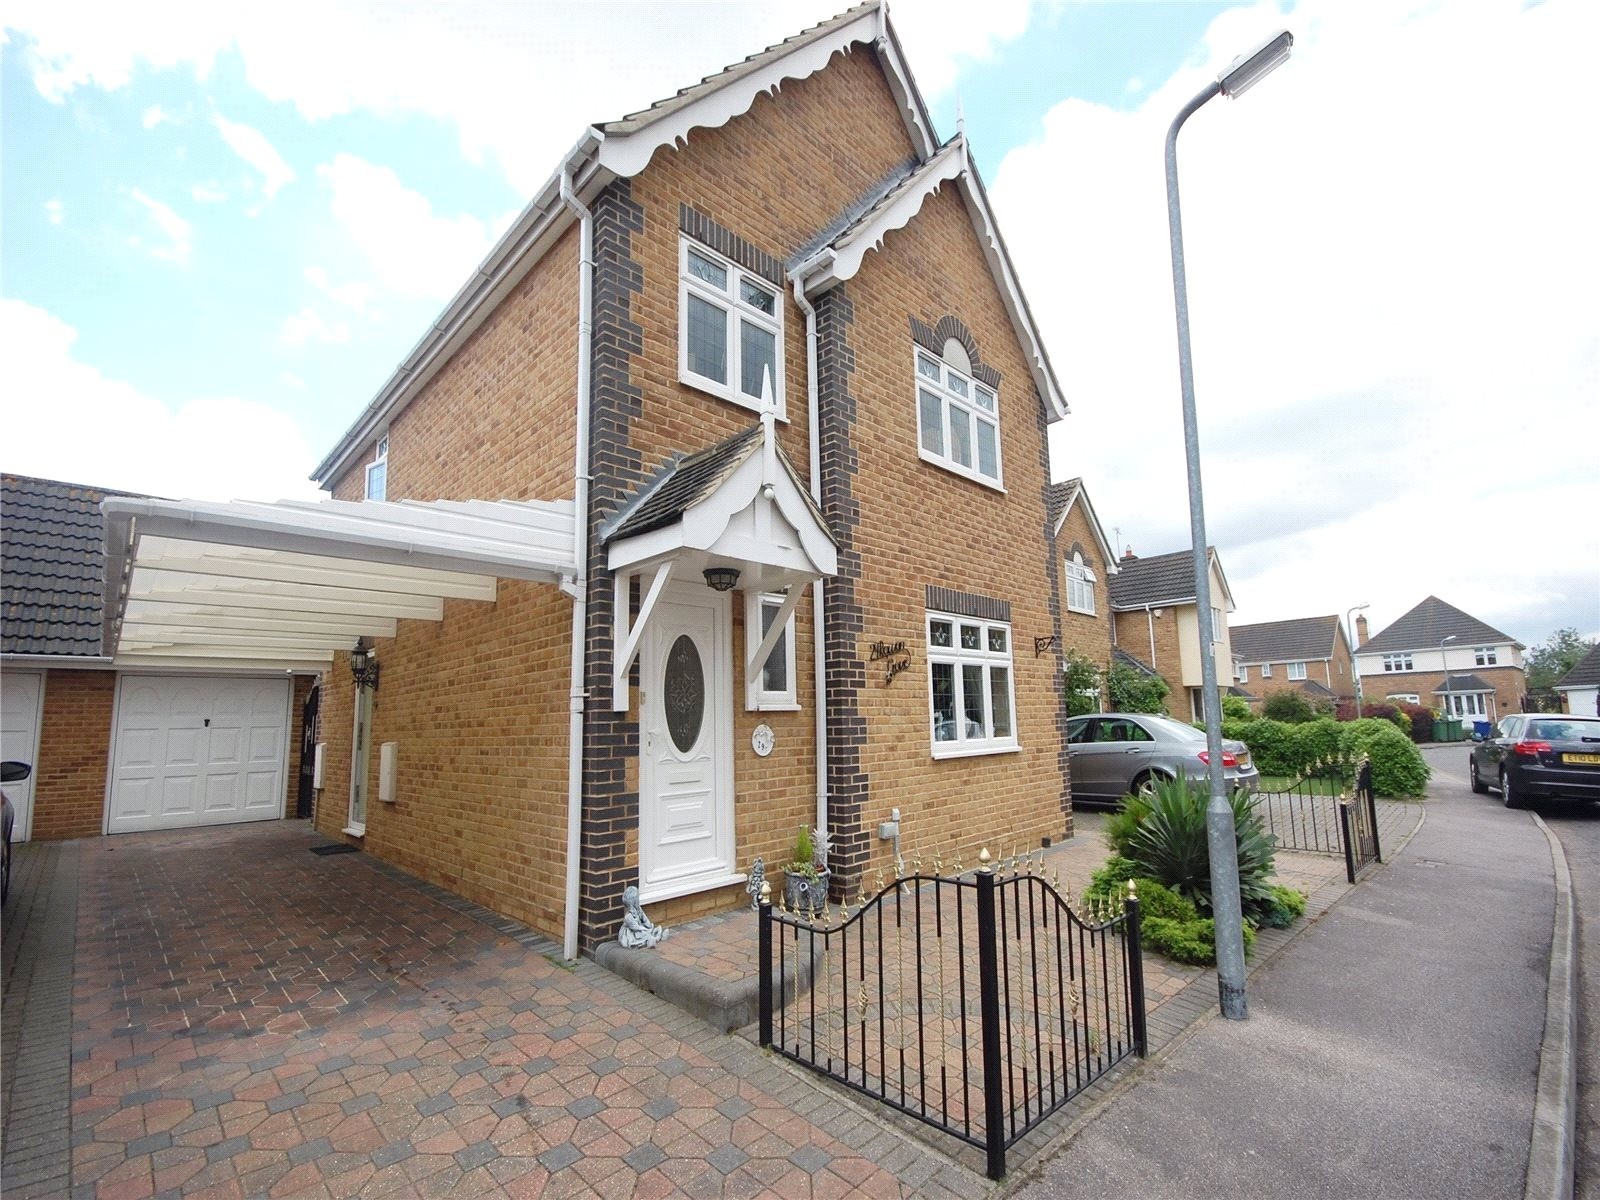 4 bedroom detached house for sale in rowan grove aveley south